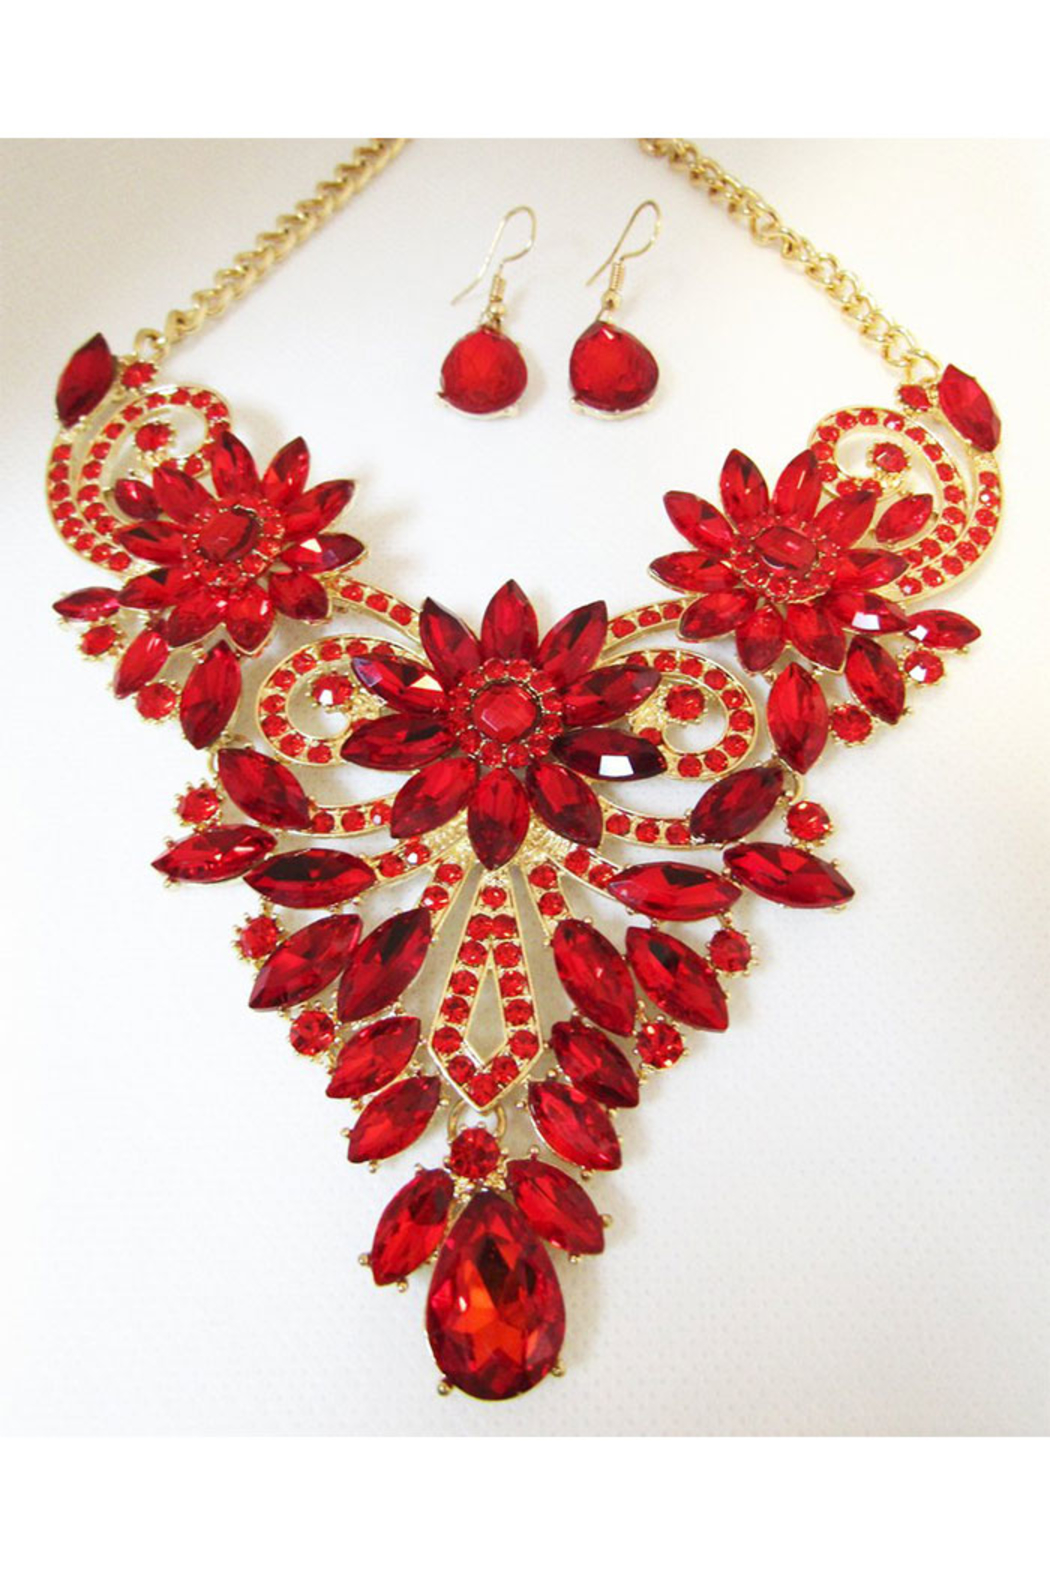 Sophia Red Rhinestone Necklace Set In Gold Setting - Main Image